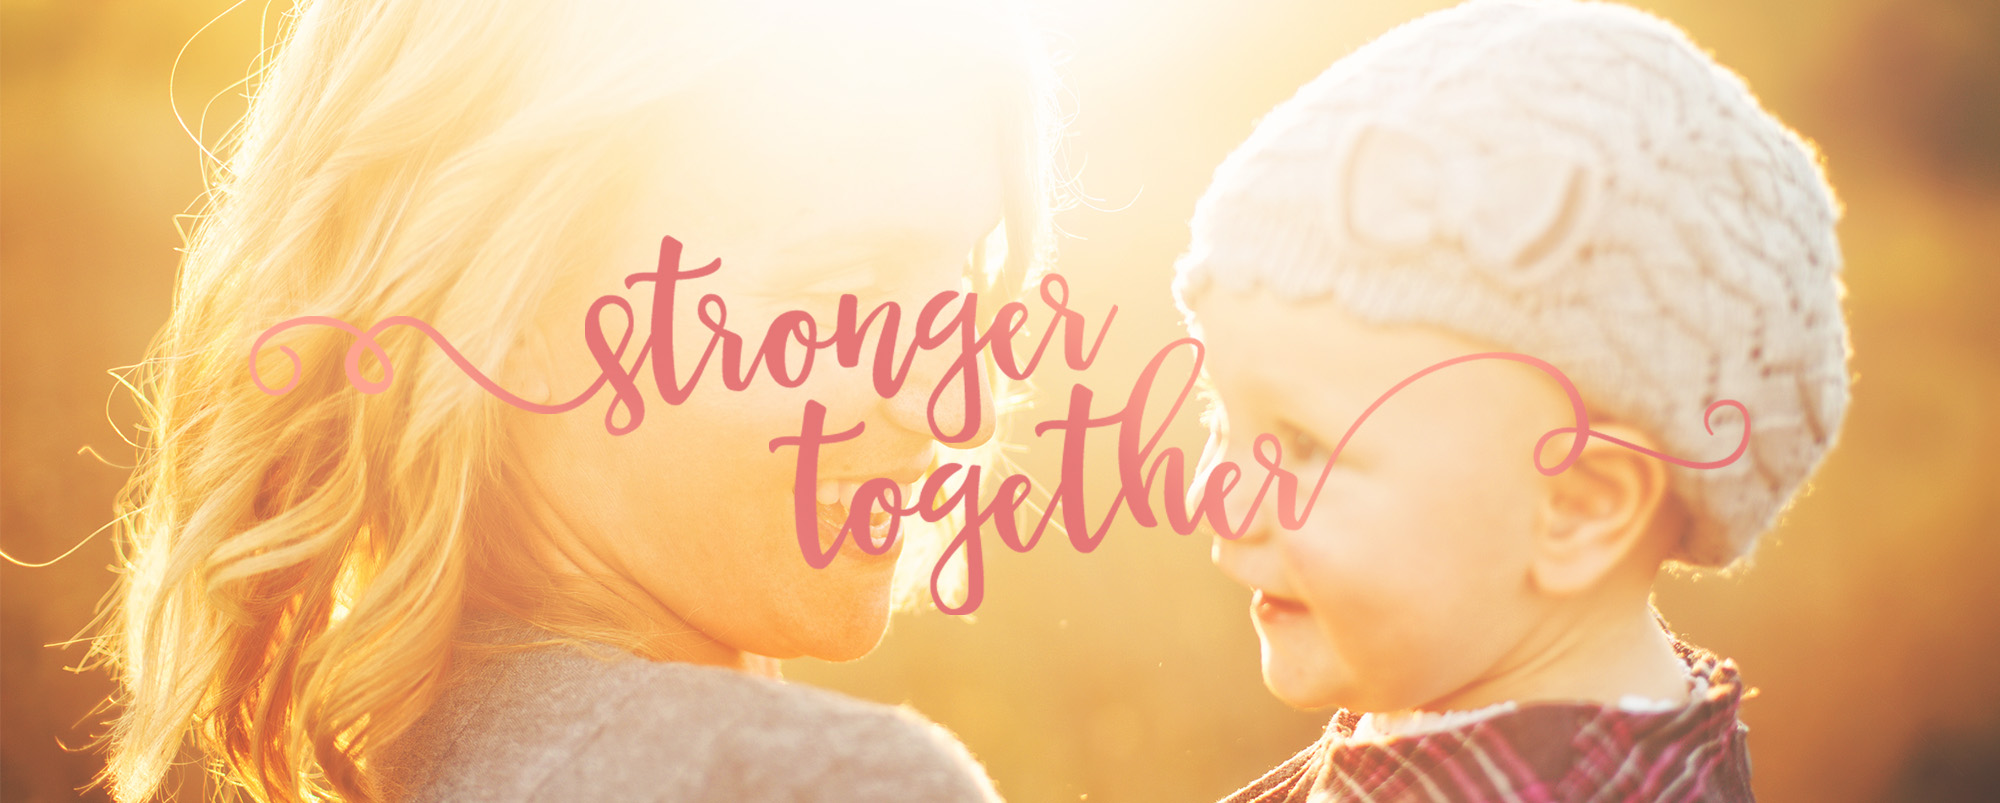 The Christian Mommy - Stronger Together